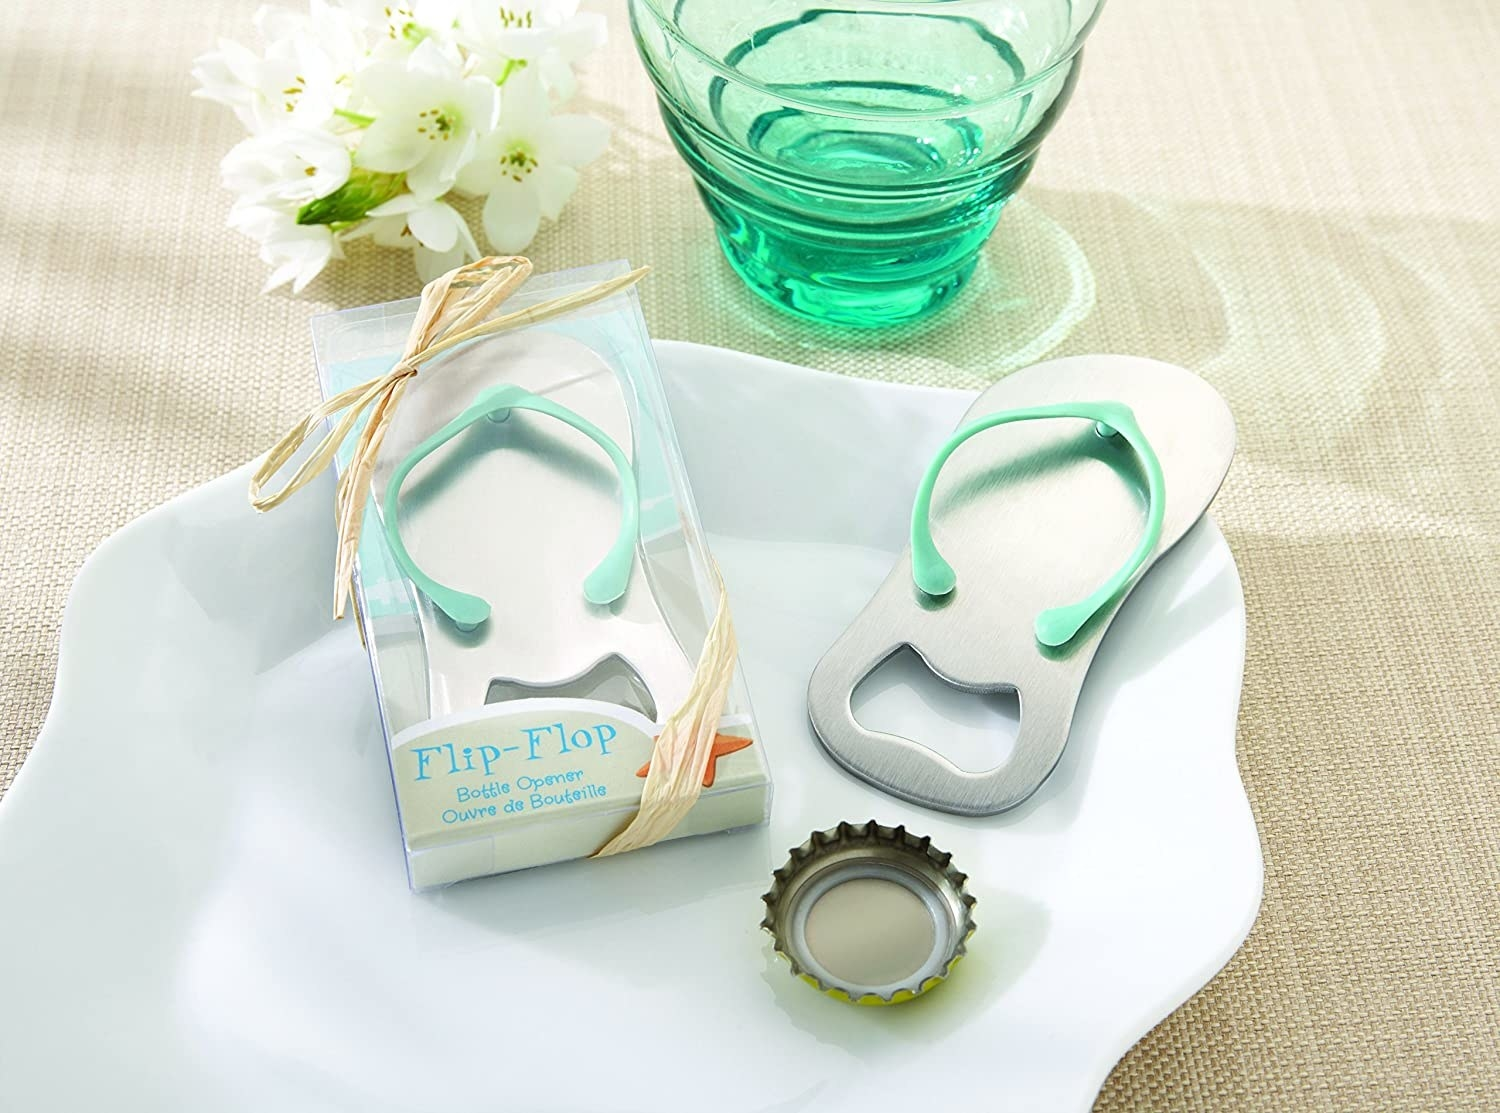 The opener, complete with a 3D flipflop strap, next to a glass and bottle top. There's also another opener next to it, show in the gift-like packaging